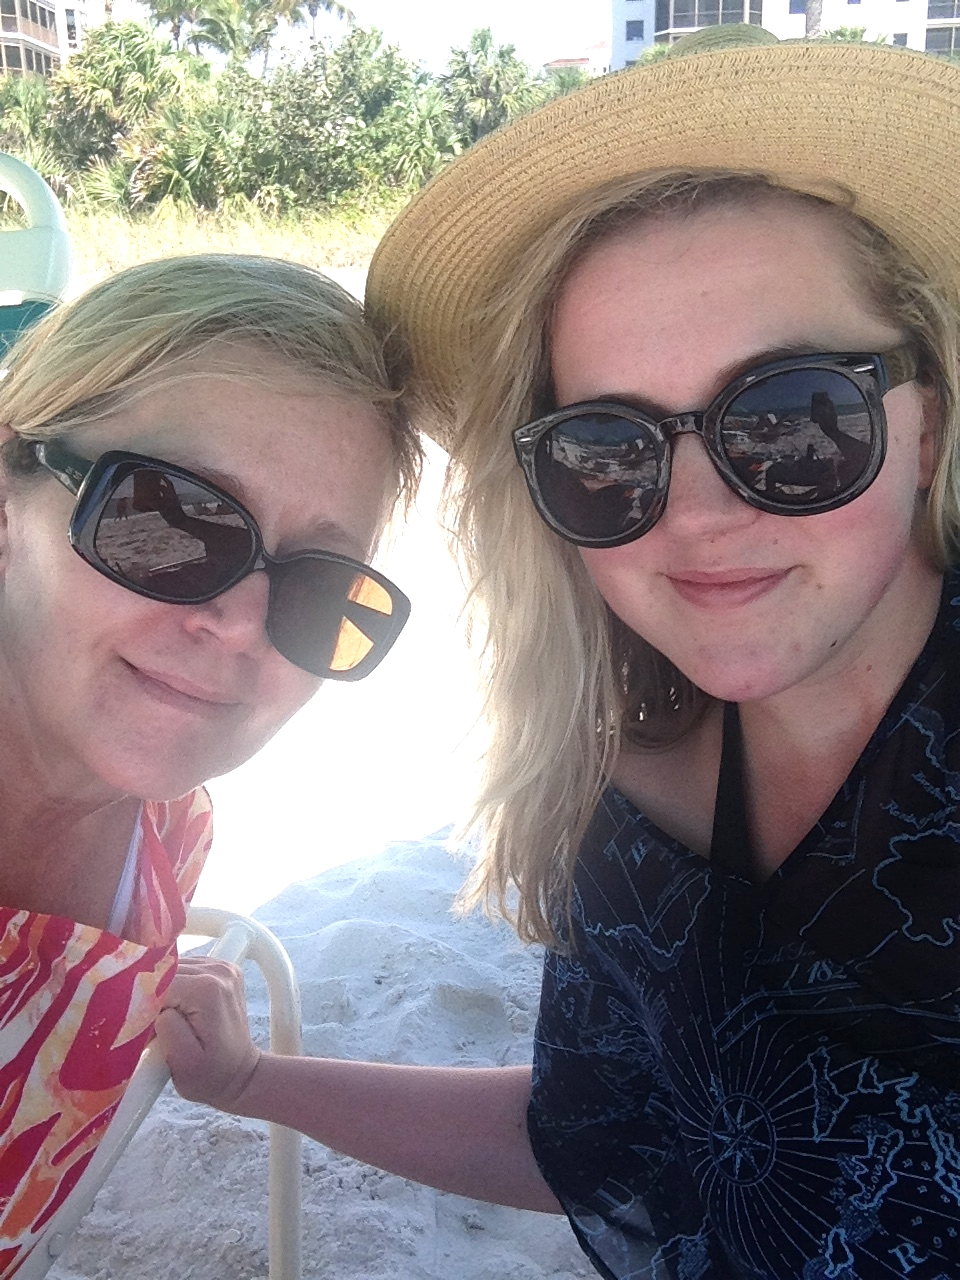 mother daughter selfie. worshipping the shade, what we do best.